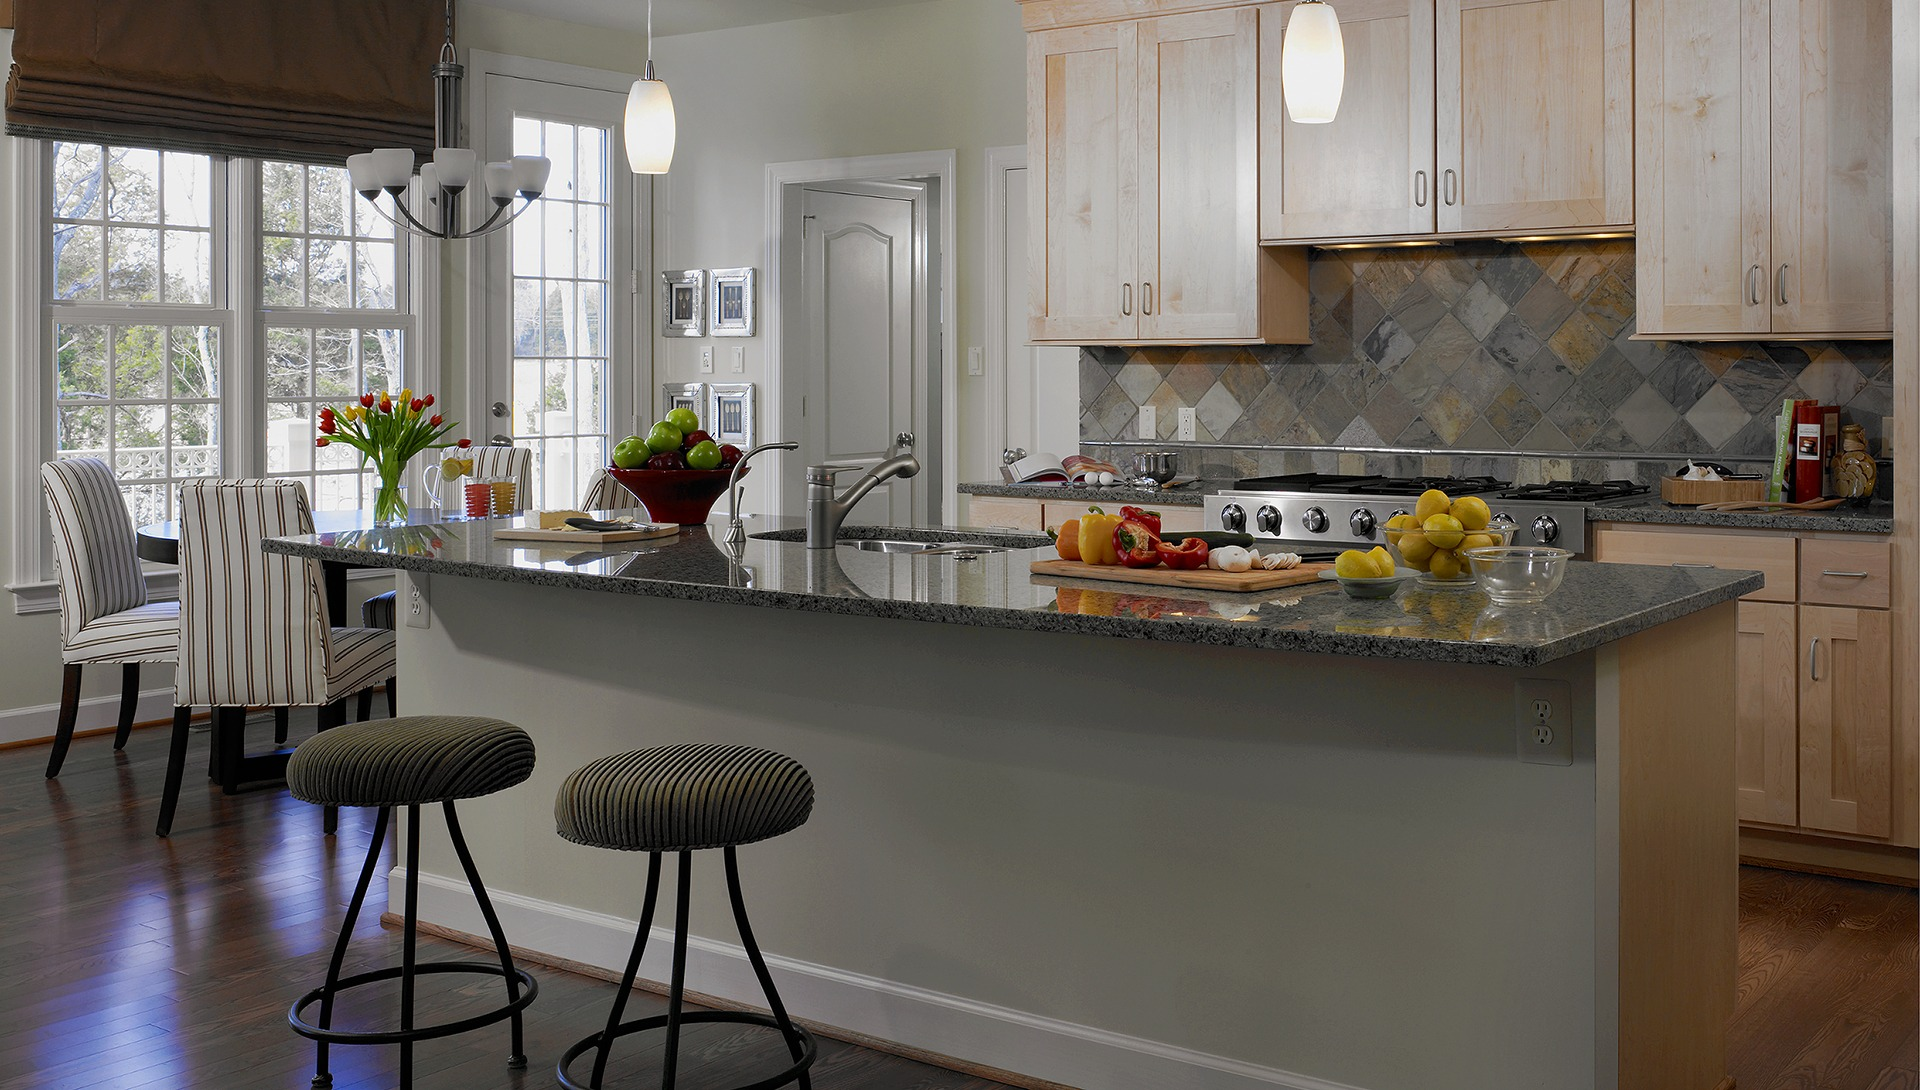 The Kitchen and Morning Room in our Ashcroft model in Brambleton. Some options shown.